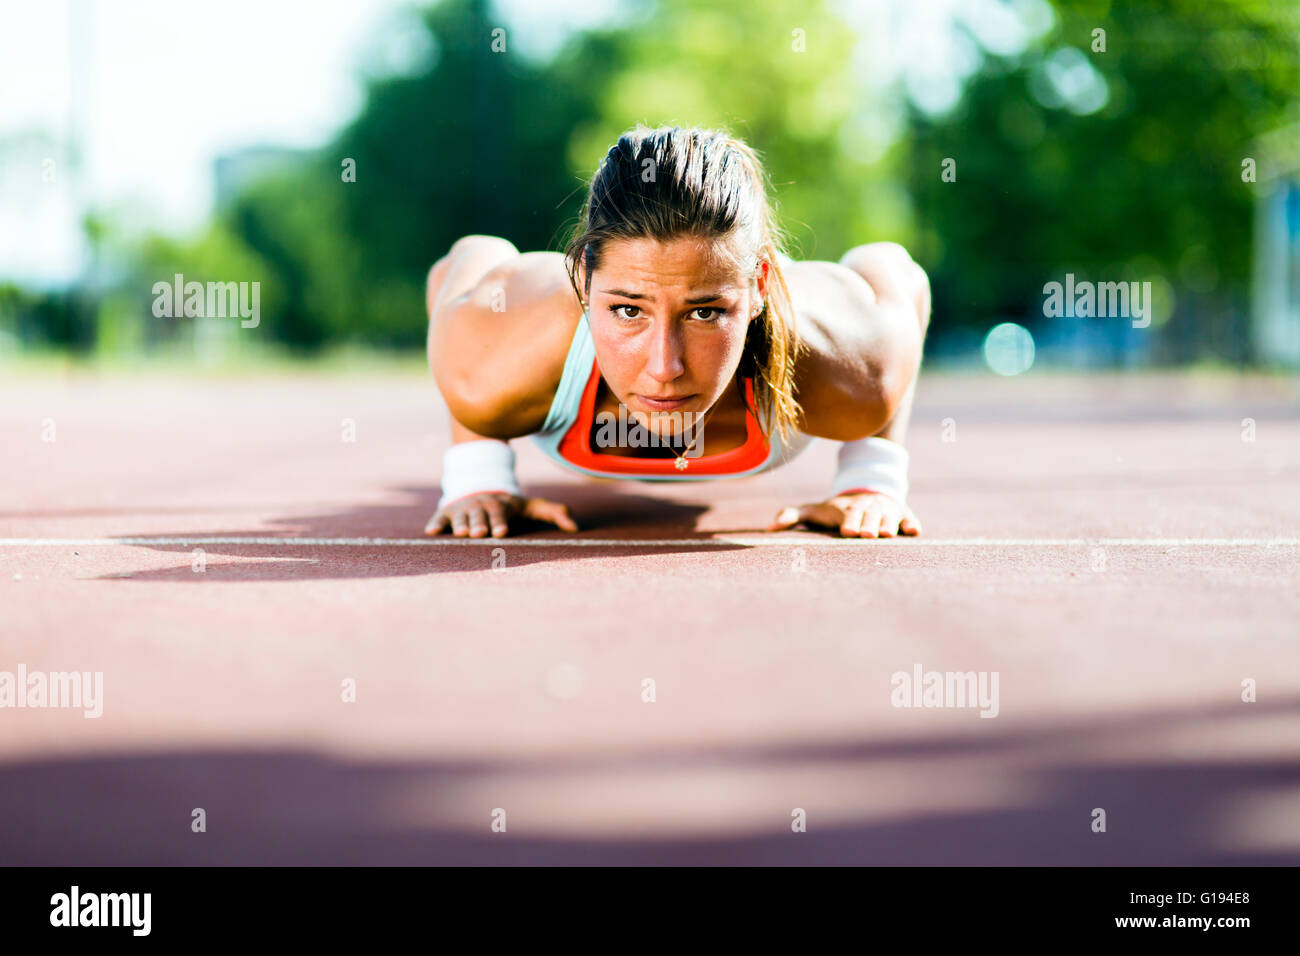 Focused young beautiful woman doing push-ups outdoors on a hot summer day - Stock Image